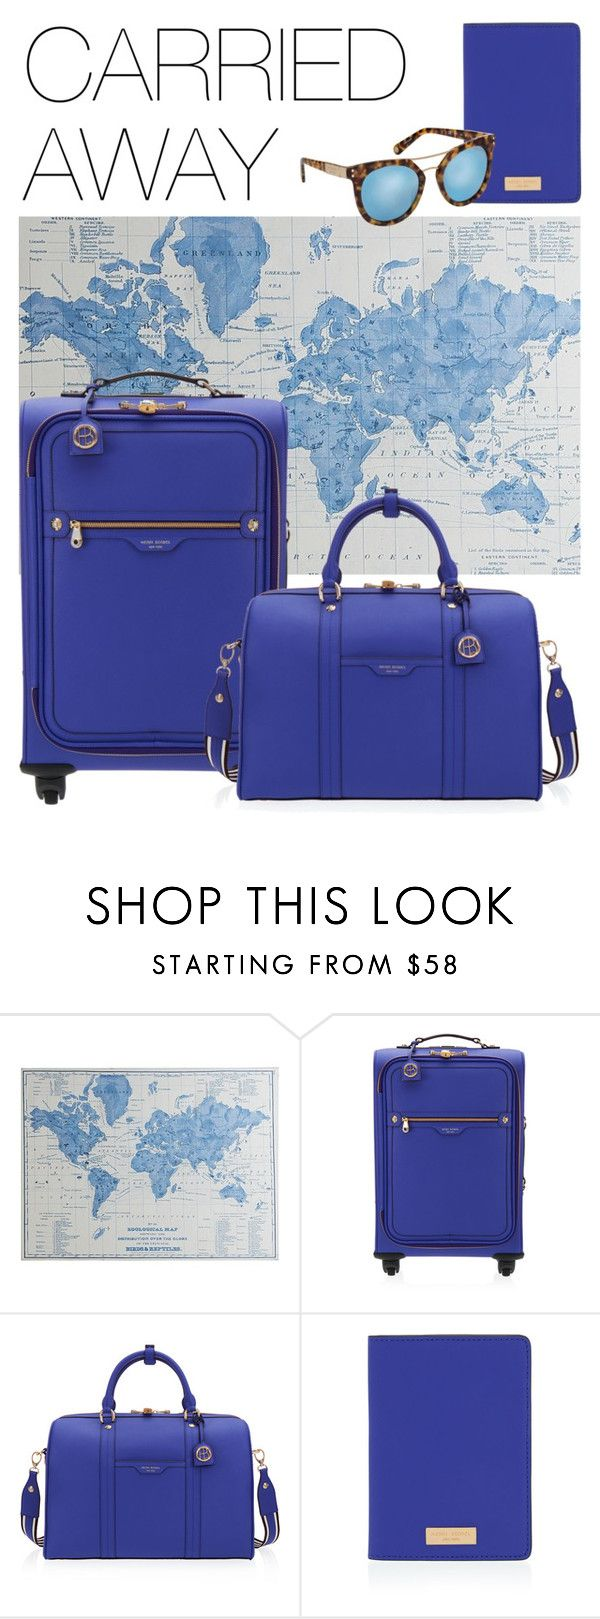 Carried away: master the art of travel with stylish luggage and accessories for your journey.